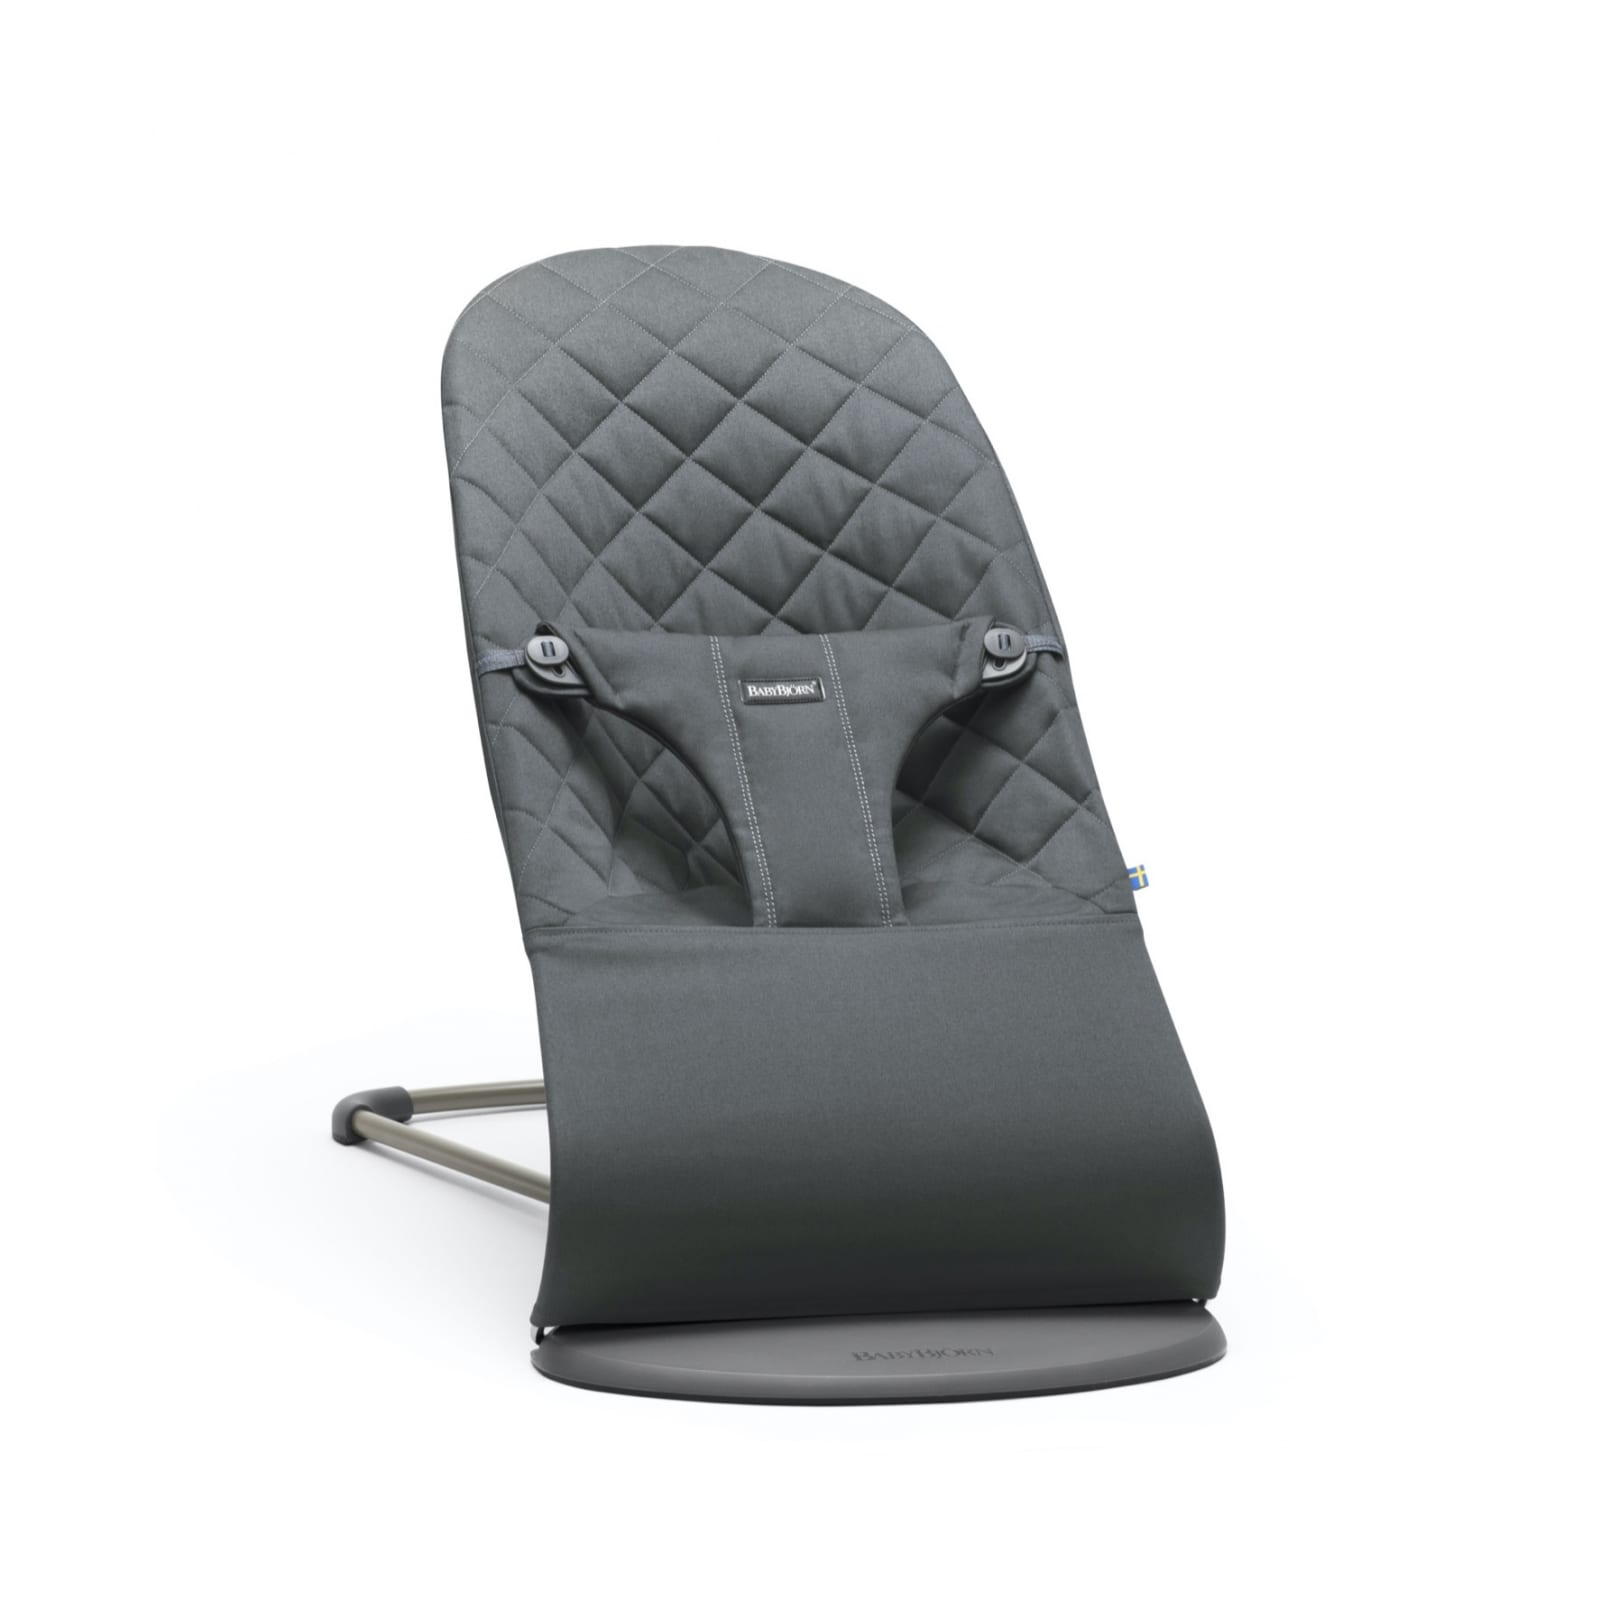 BabyBjorn Bouncer Bliss, Anthracite Cotton product image